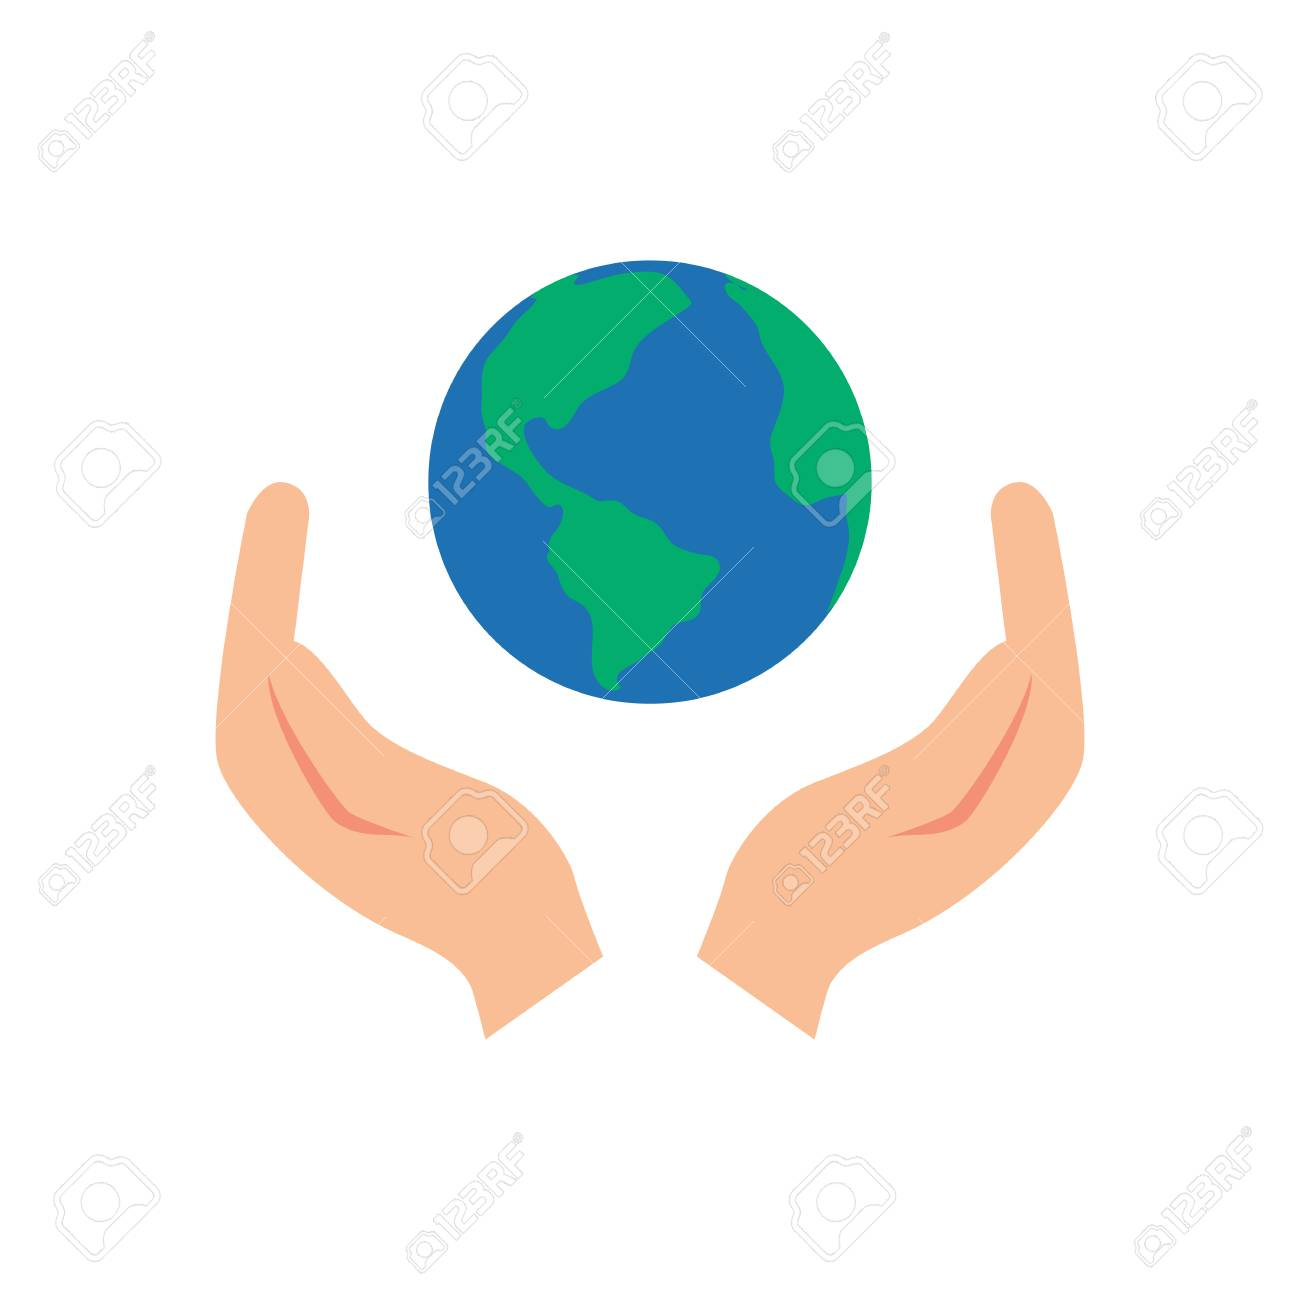 Vector illustration of two hands holding the Earth.